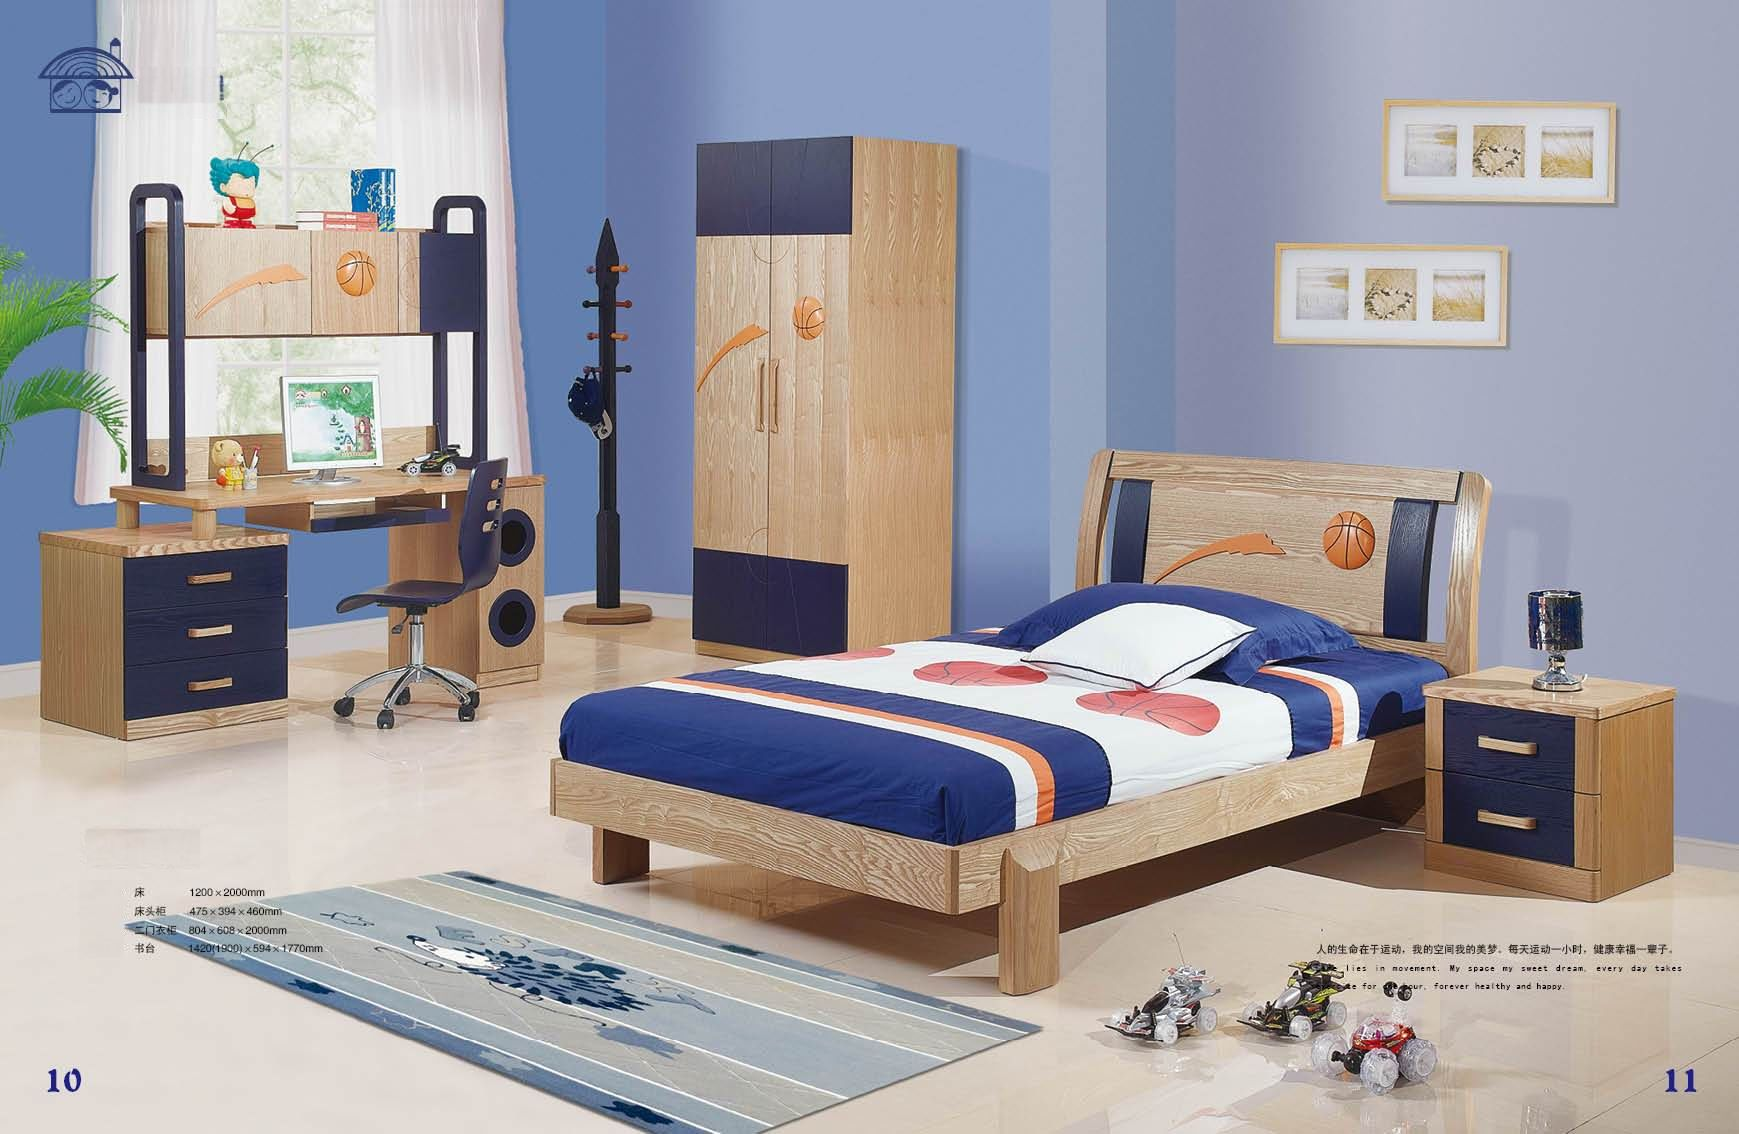 Explore Modern Bedroom Sets Kids Bedroom Sets And More